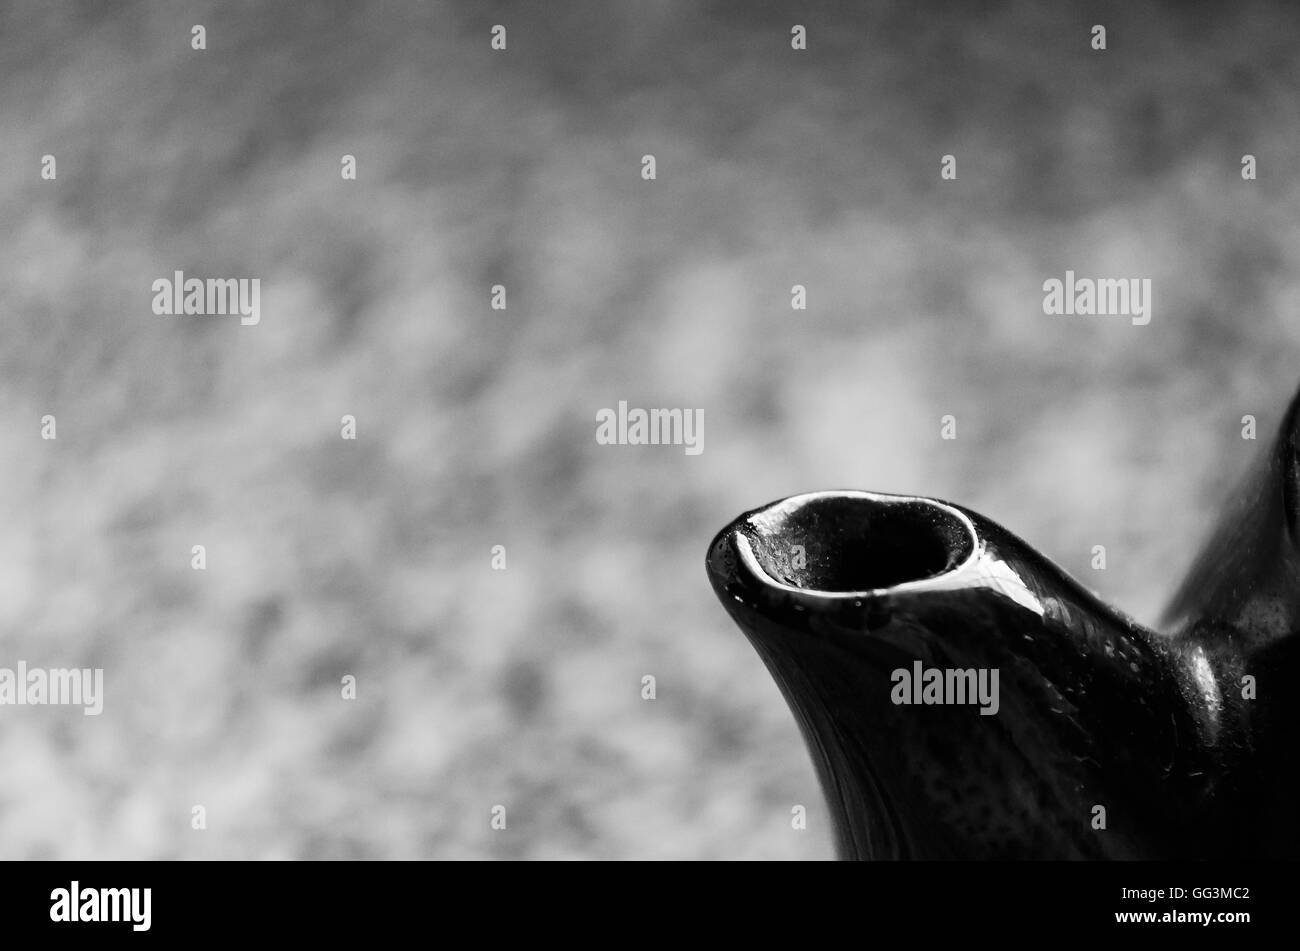 A teapot spout isolated on blurred background. - Stock Image